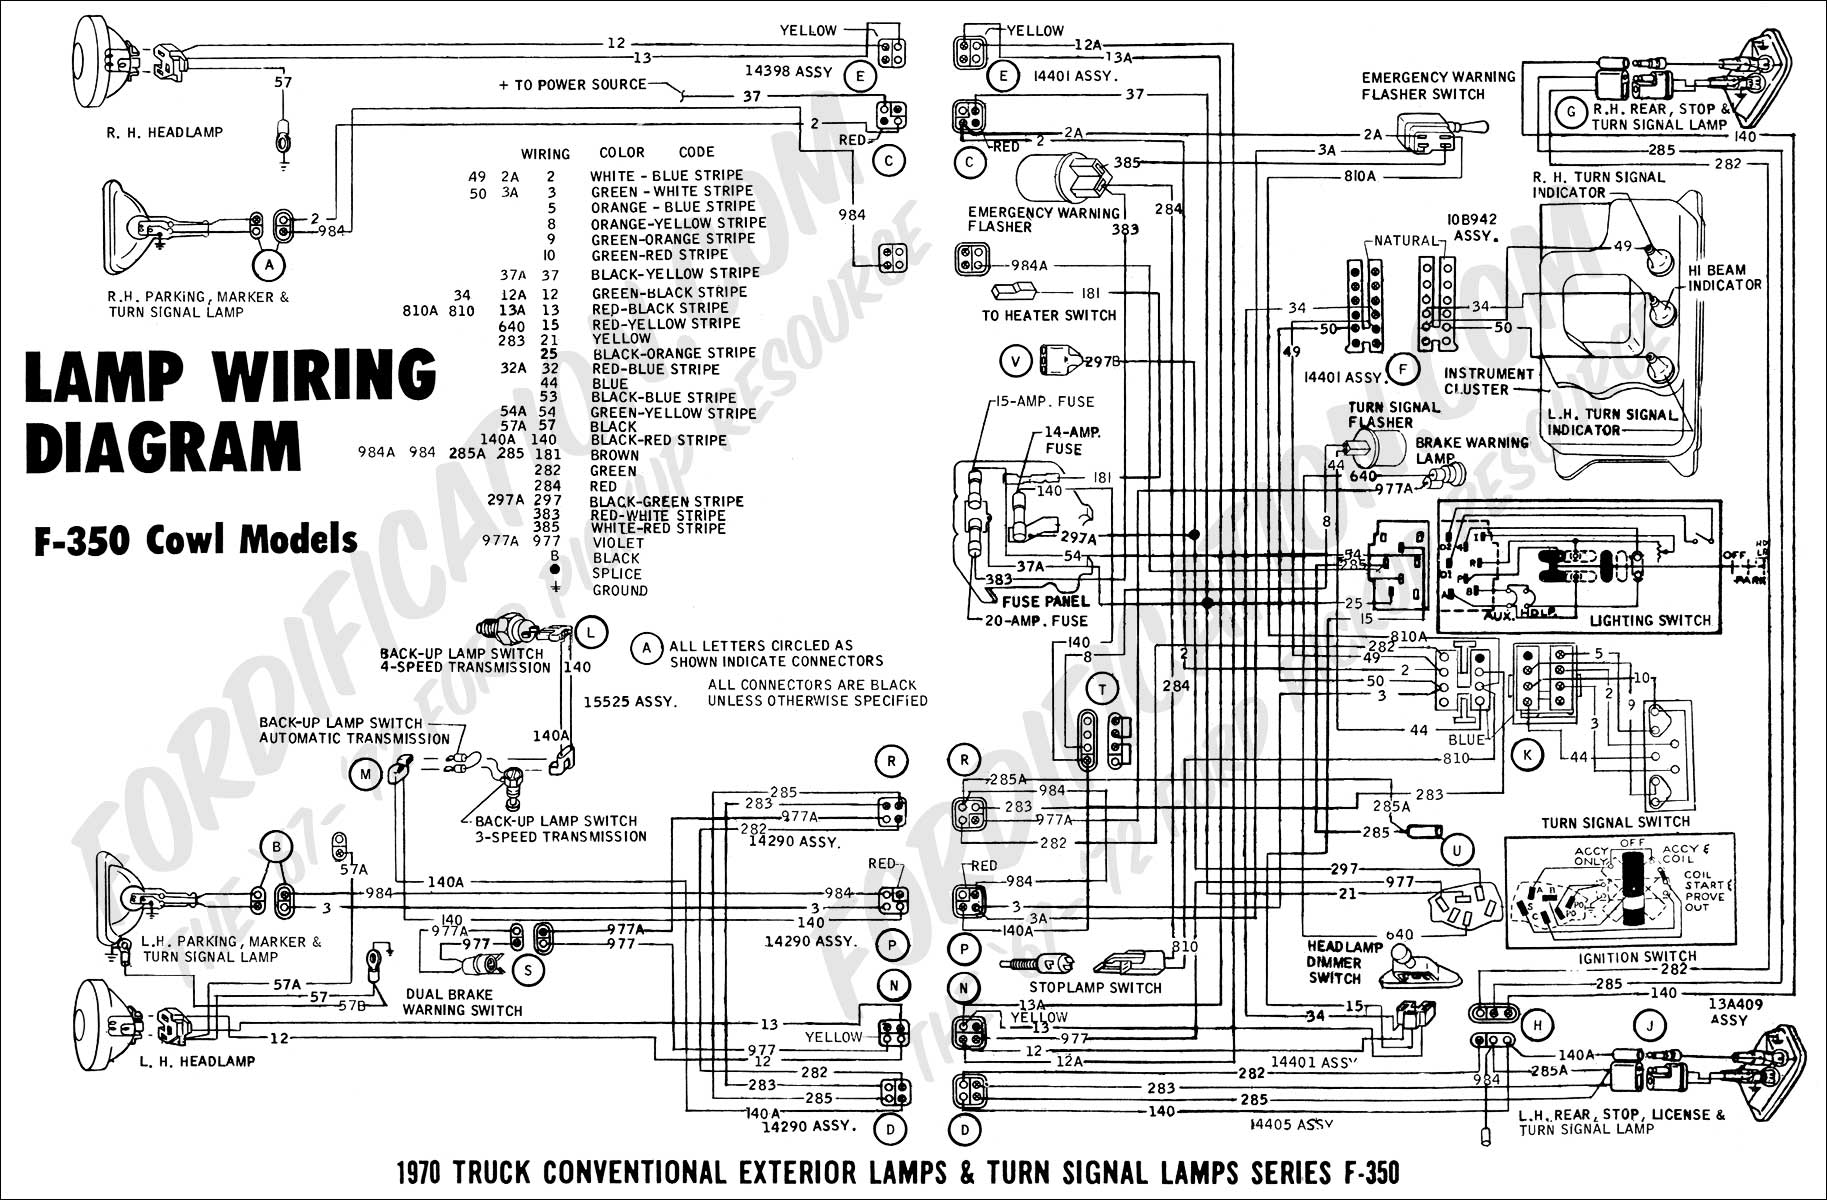 1985 Ford Aod Transmission Wiring Diagram Books Of Gentex 177 550 Starting Know About Rh Prezzy Co